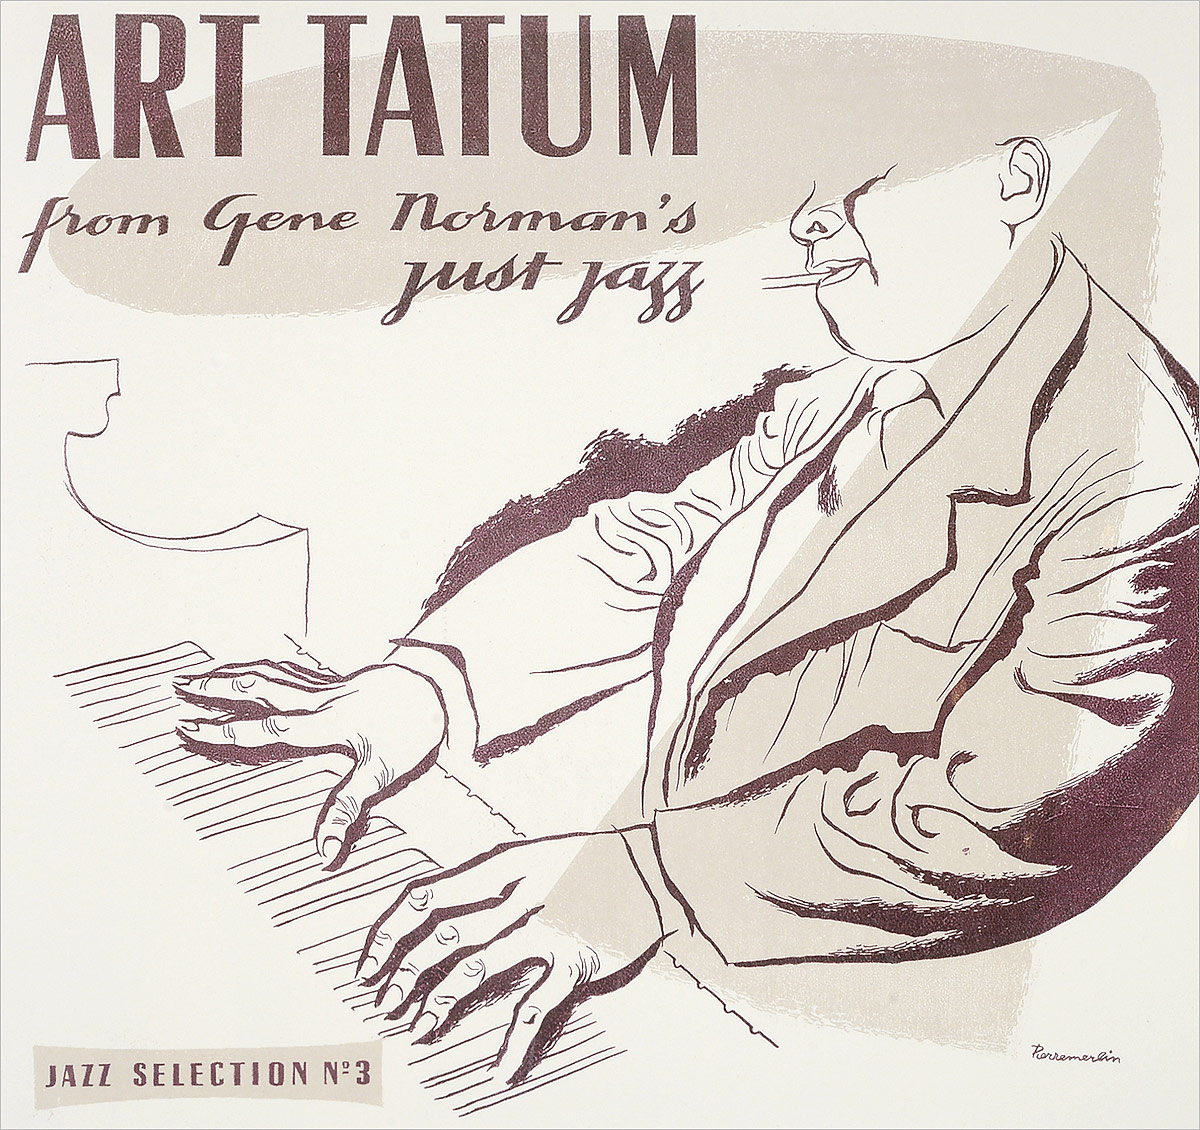 Арт Тэйтум Art Tatum. From Gene Norman's Just Jazz (LP) виниловая пластинка art tatum ben webster art tatumfrom gene norman's just jazz